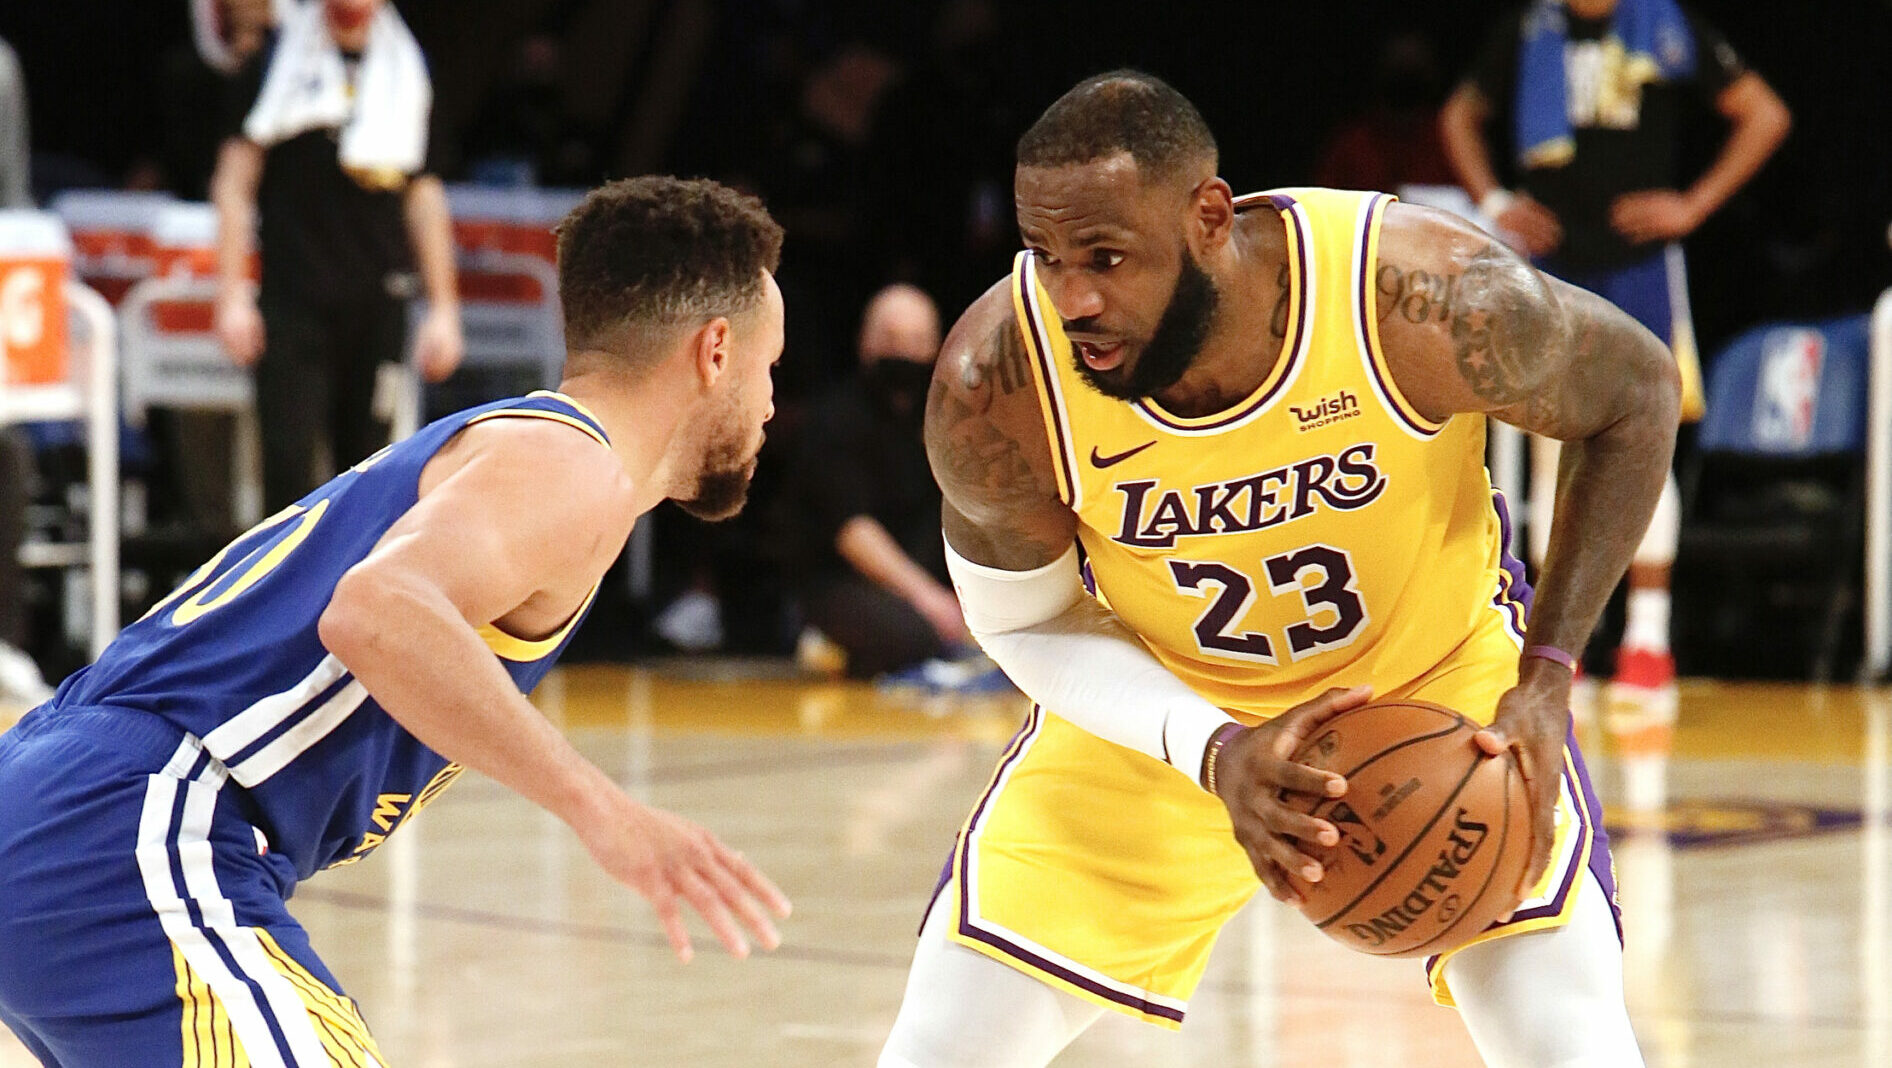 Warriors, Lakers to battle in Play-In Tournament